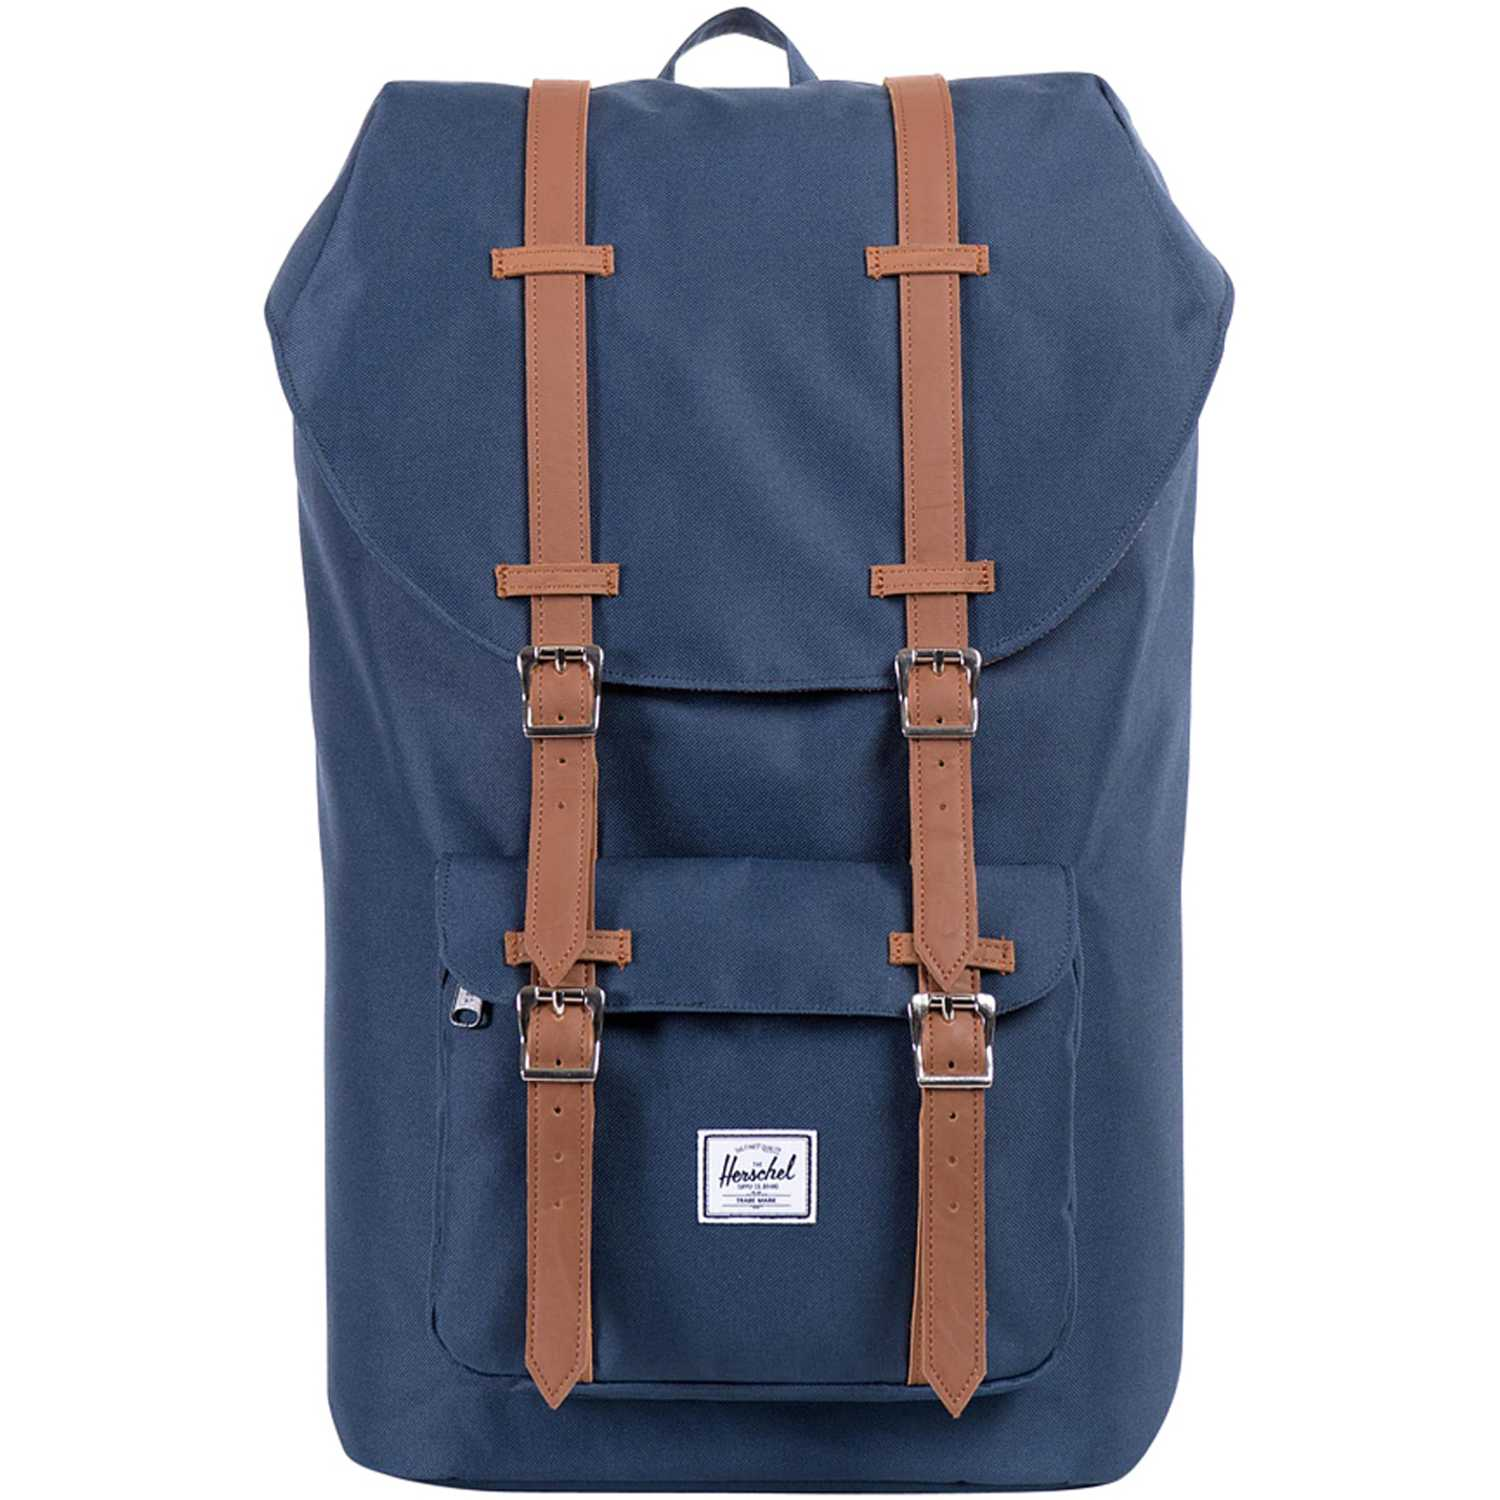 HERSCHEL Little America Navy Tsl Bp Azul / marrón Mochilas multipropósitos